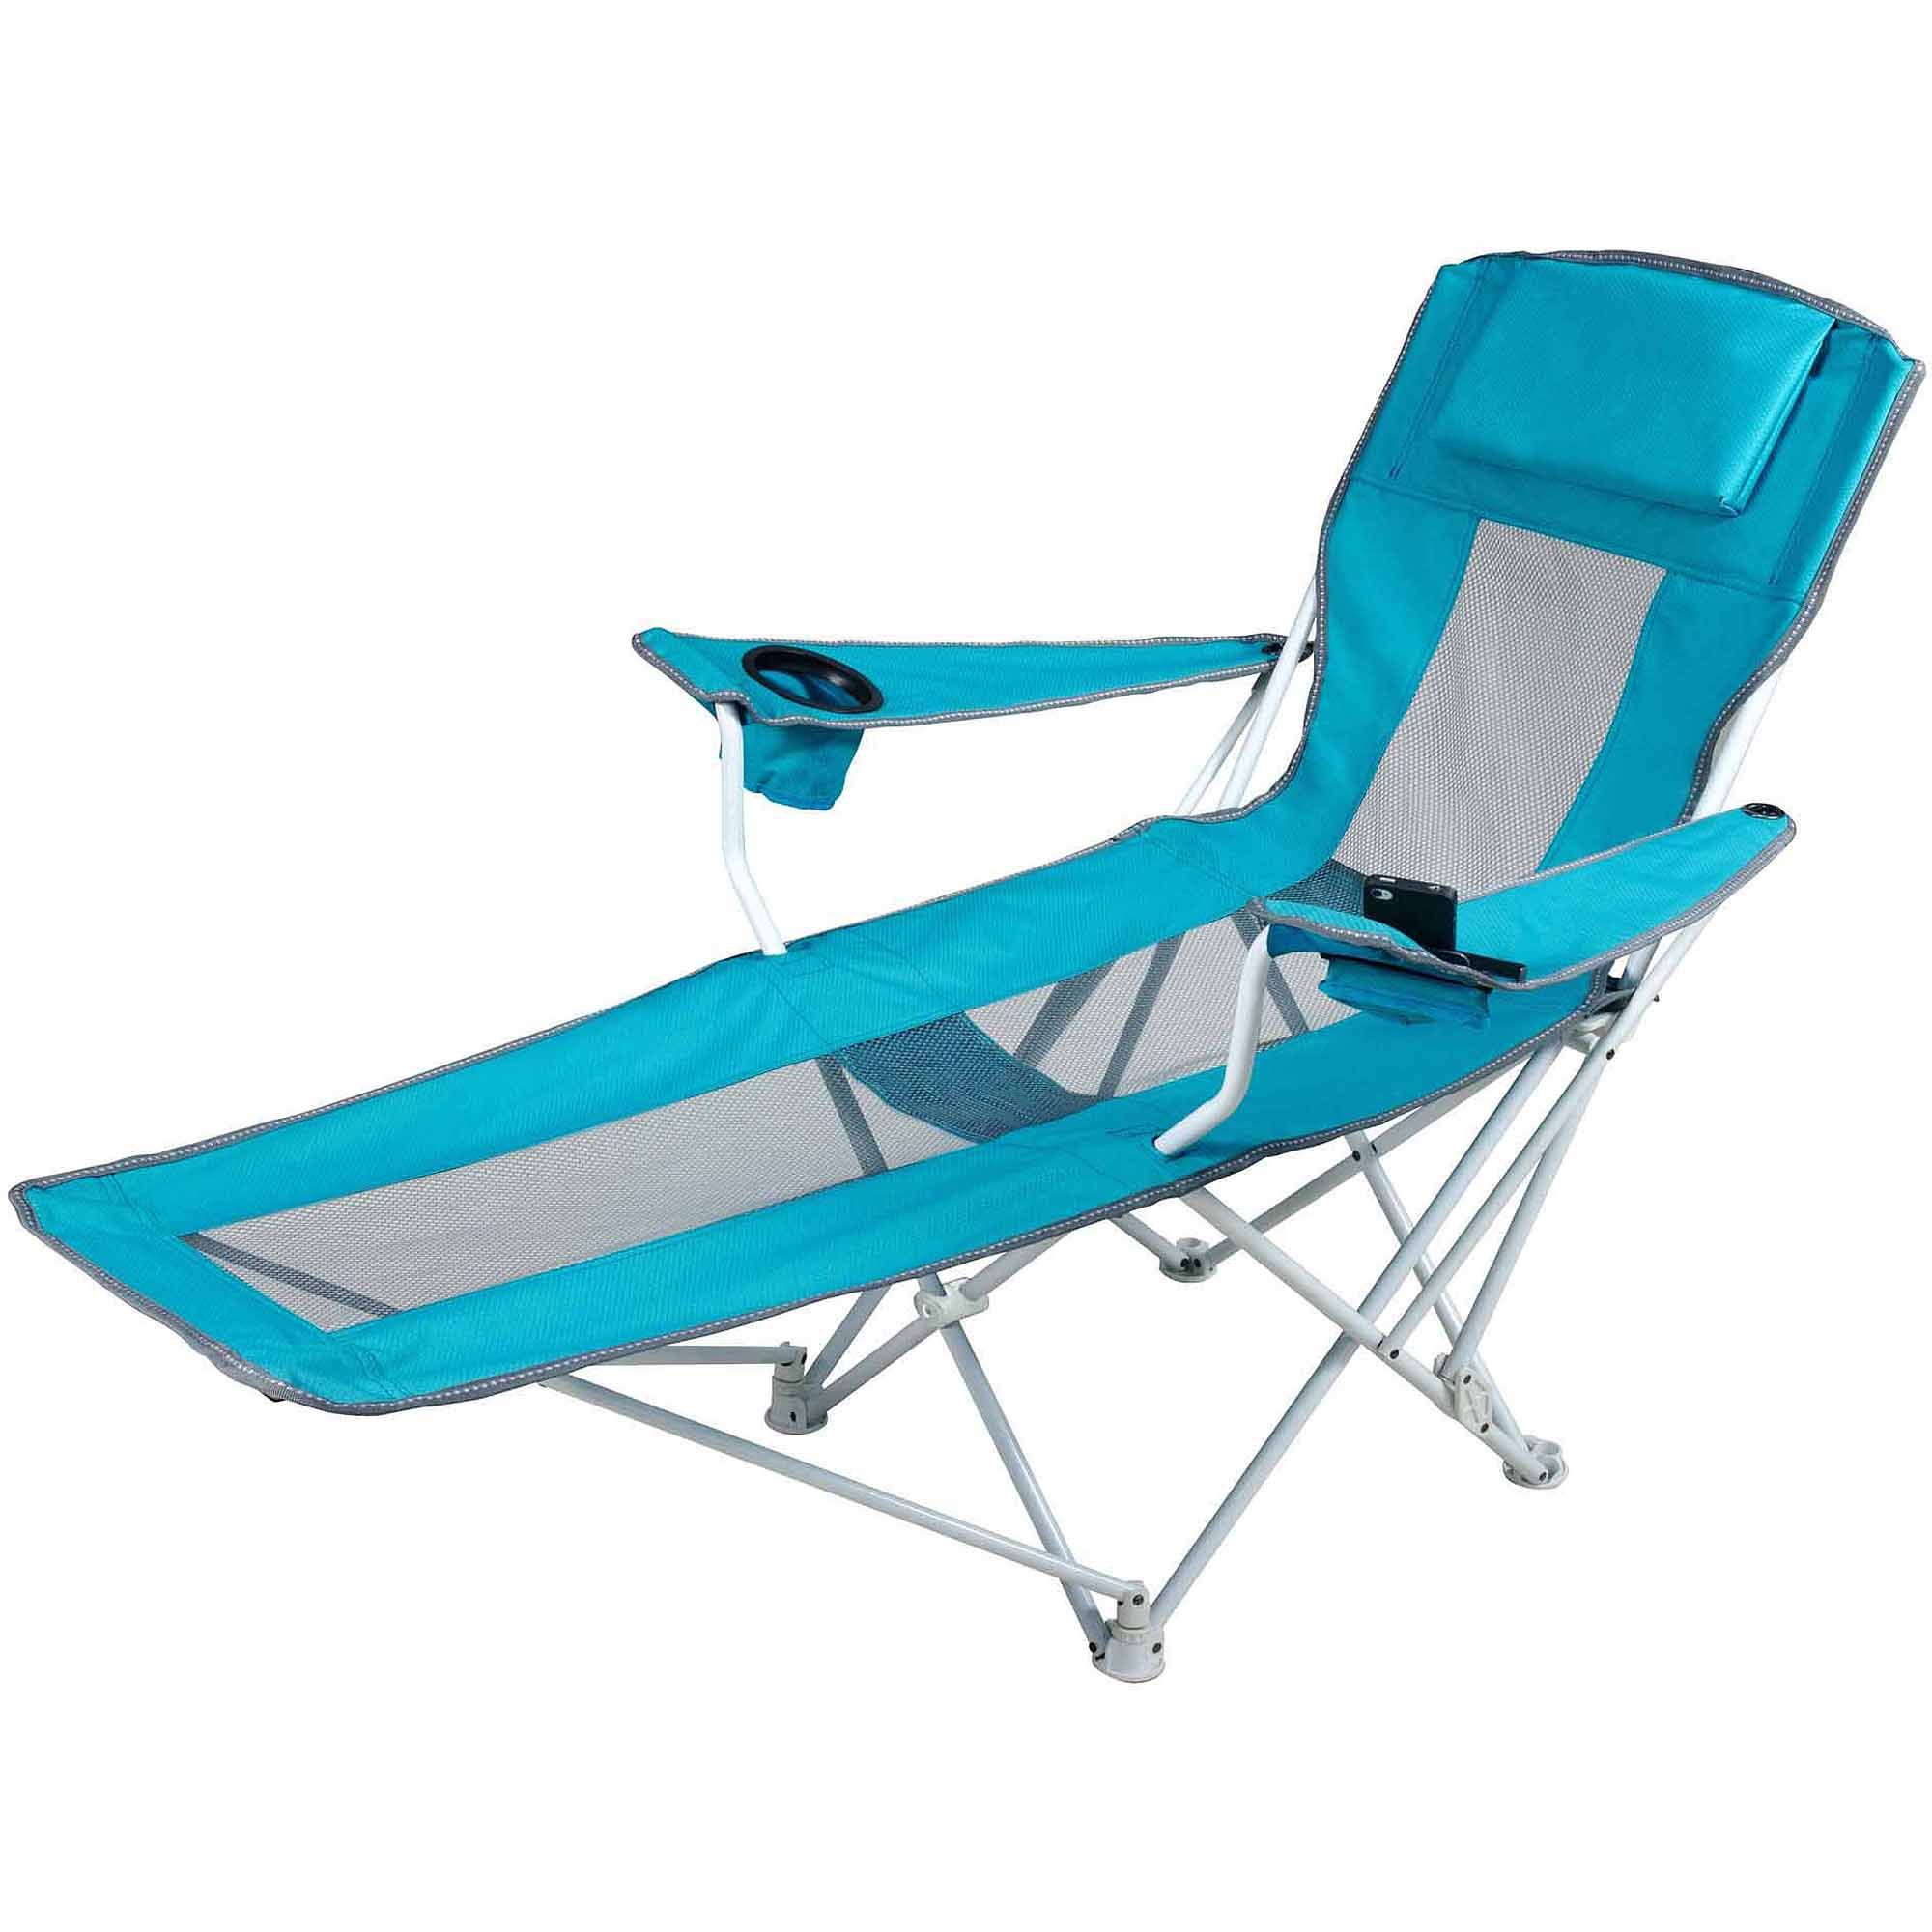 Folding Lawn Chairs Walmart Folding Lawn Chairs Pinterest